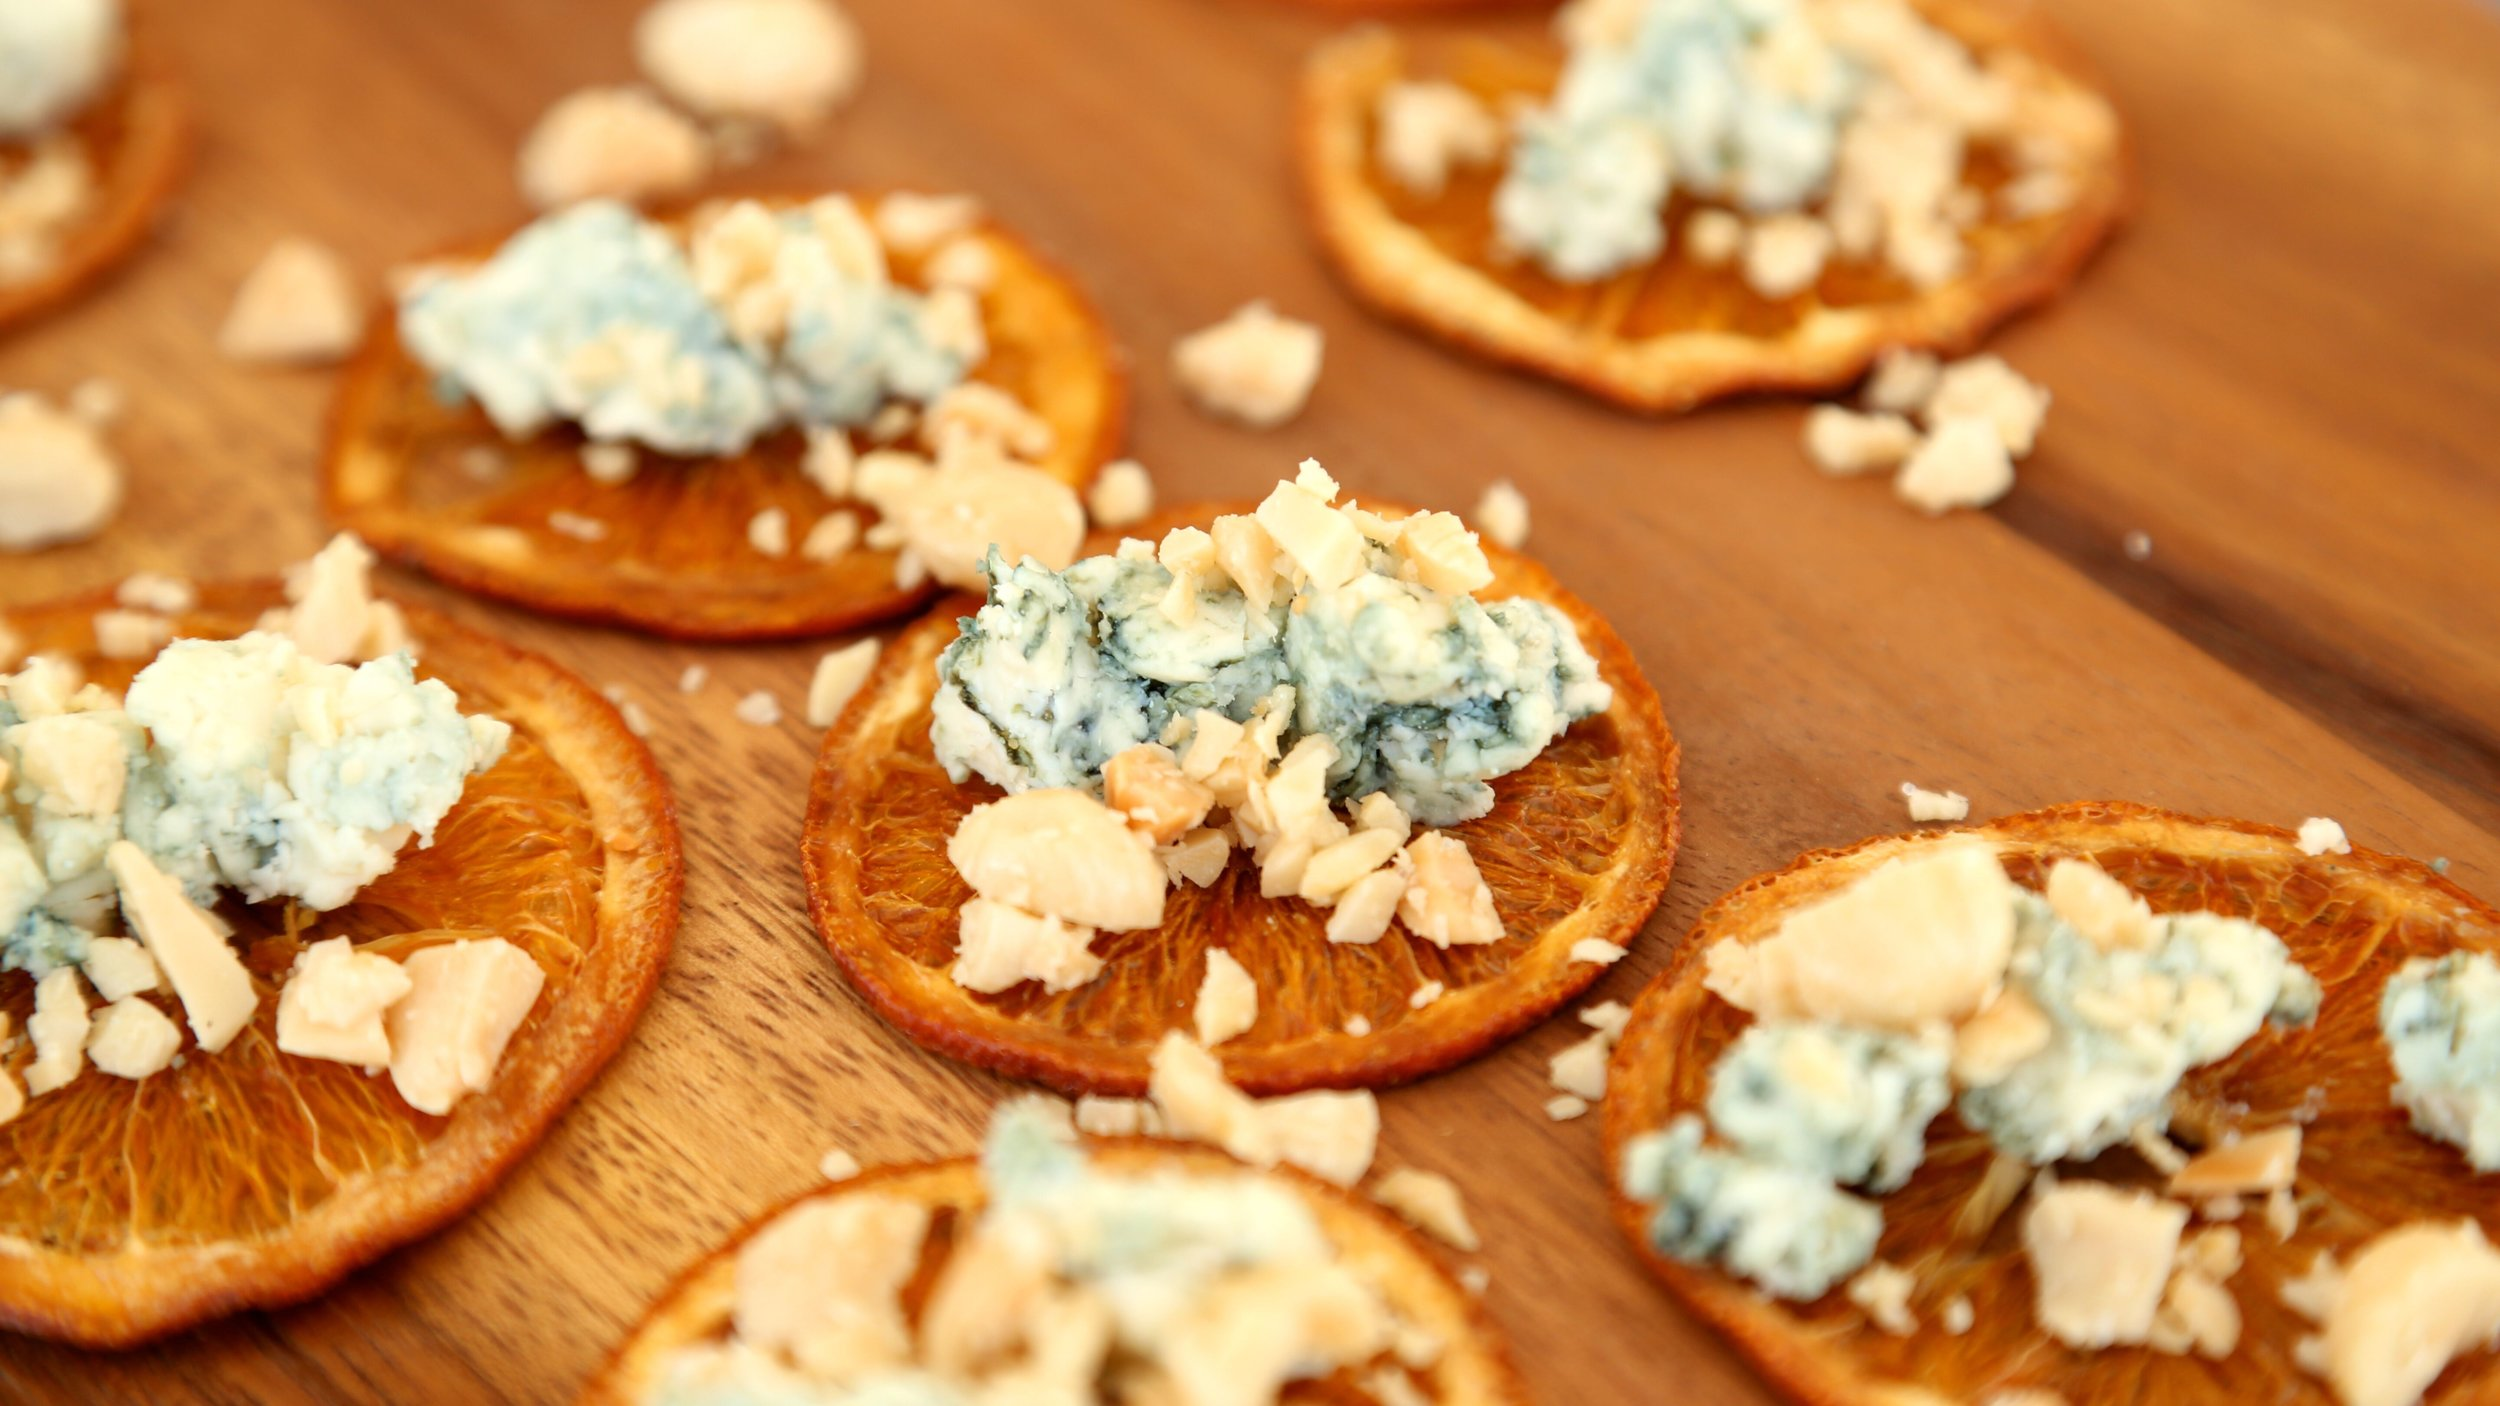 Blue cheese and marcona almond bites on orange crisps